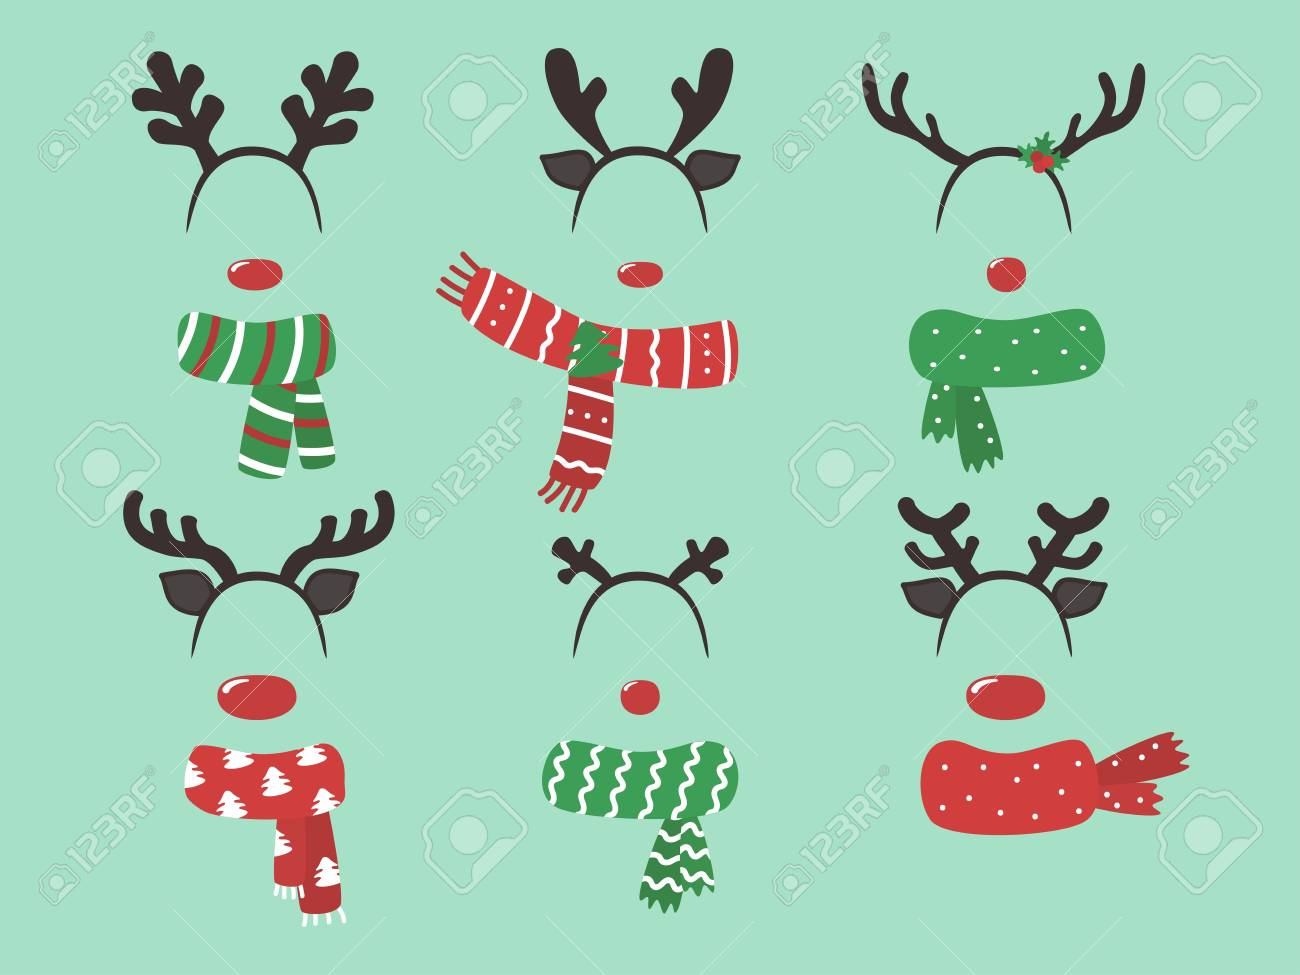 This is a picture of Free Printable Christmas Photo Booth Props for stencil